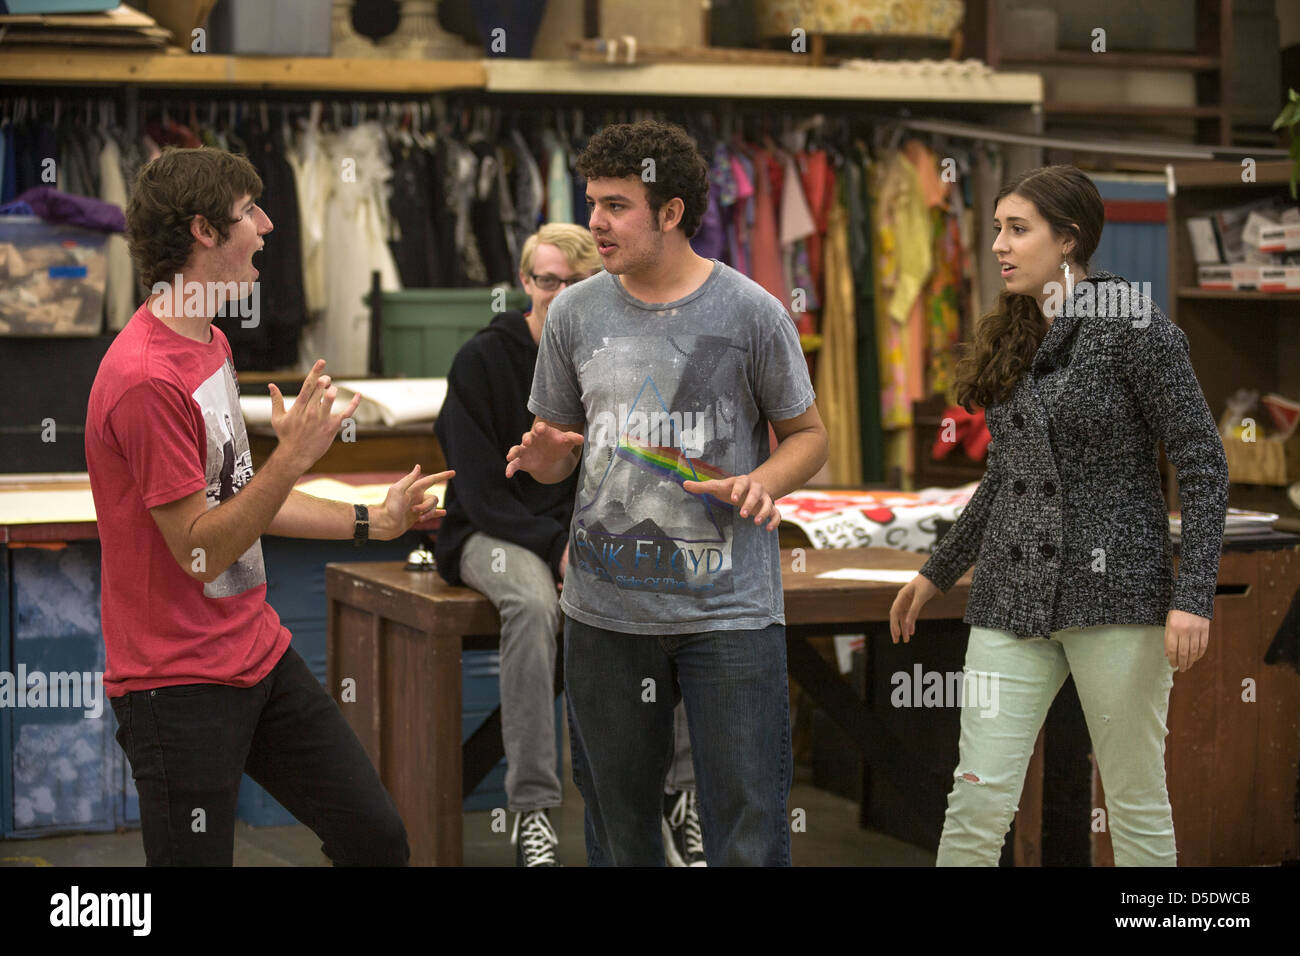 Three high school drama drama students perform improvisational theatre for their classmates in San Clemente, CA - Stock Image